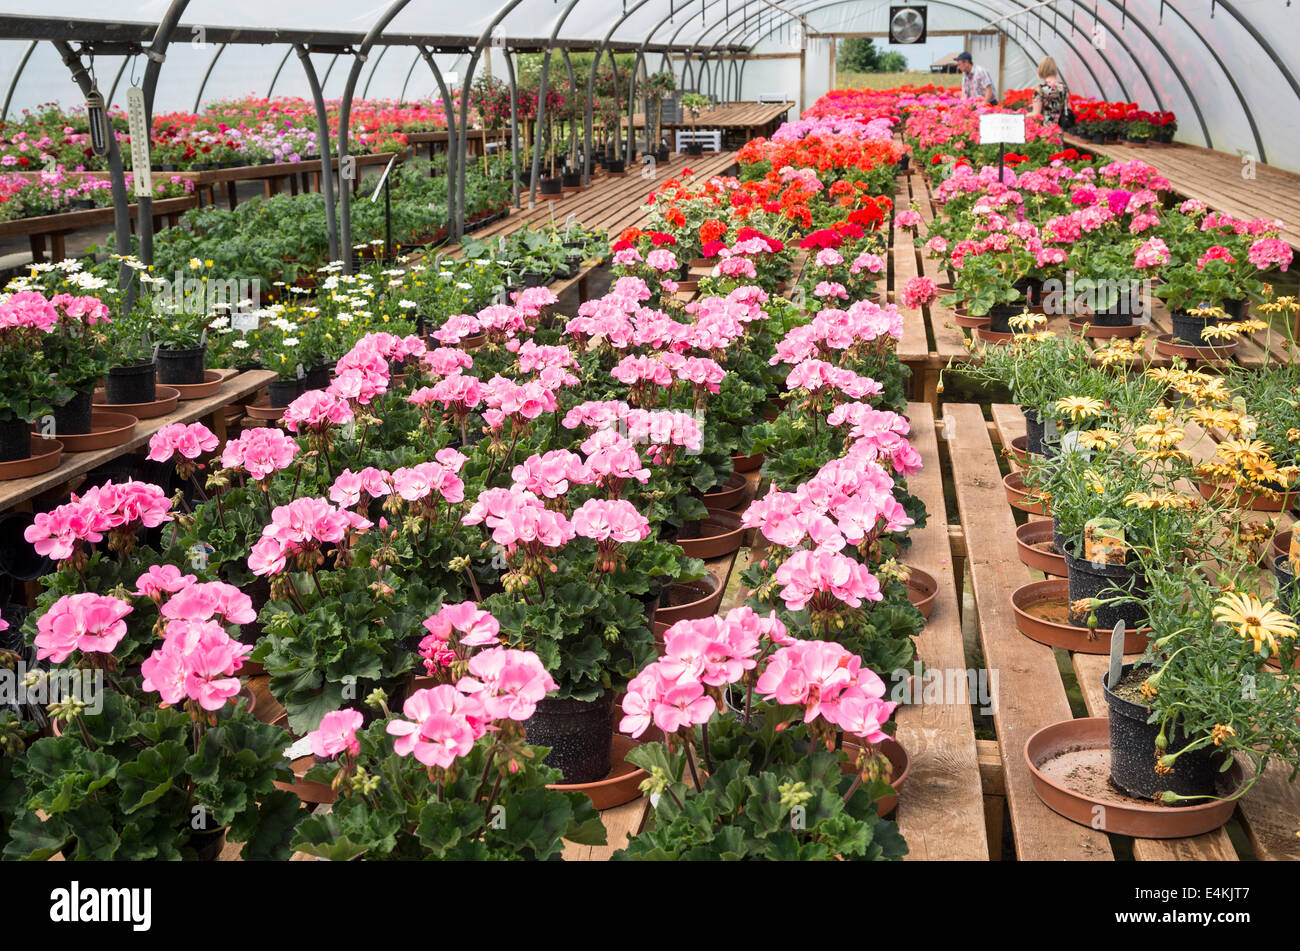 Polytunnel housing young pelargonium plants at an English nursery - Stock Image